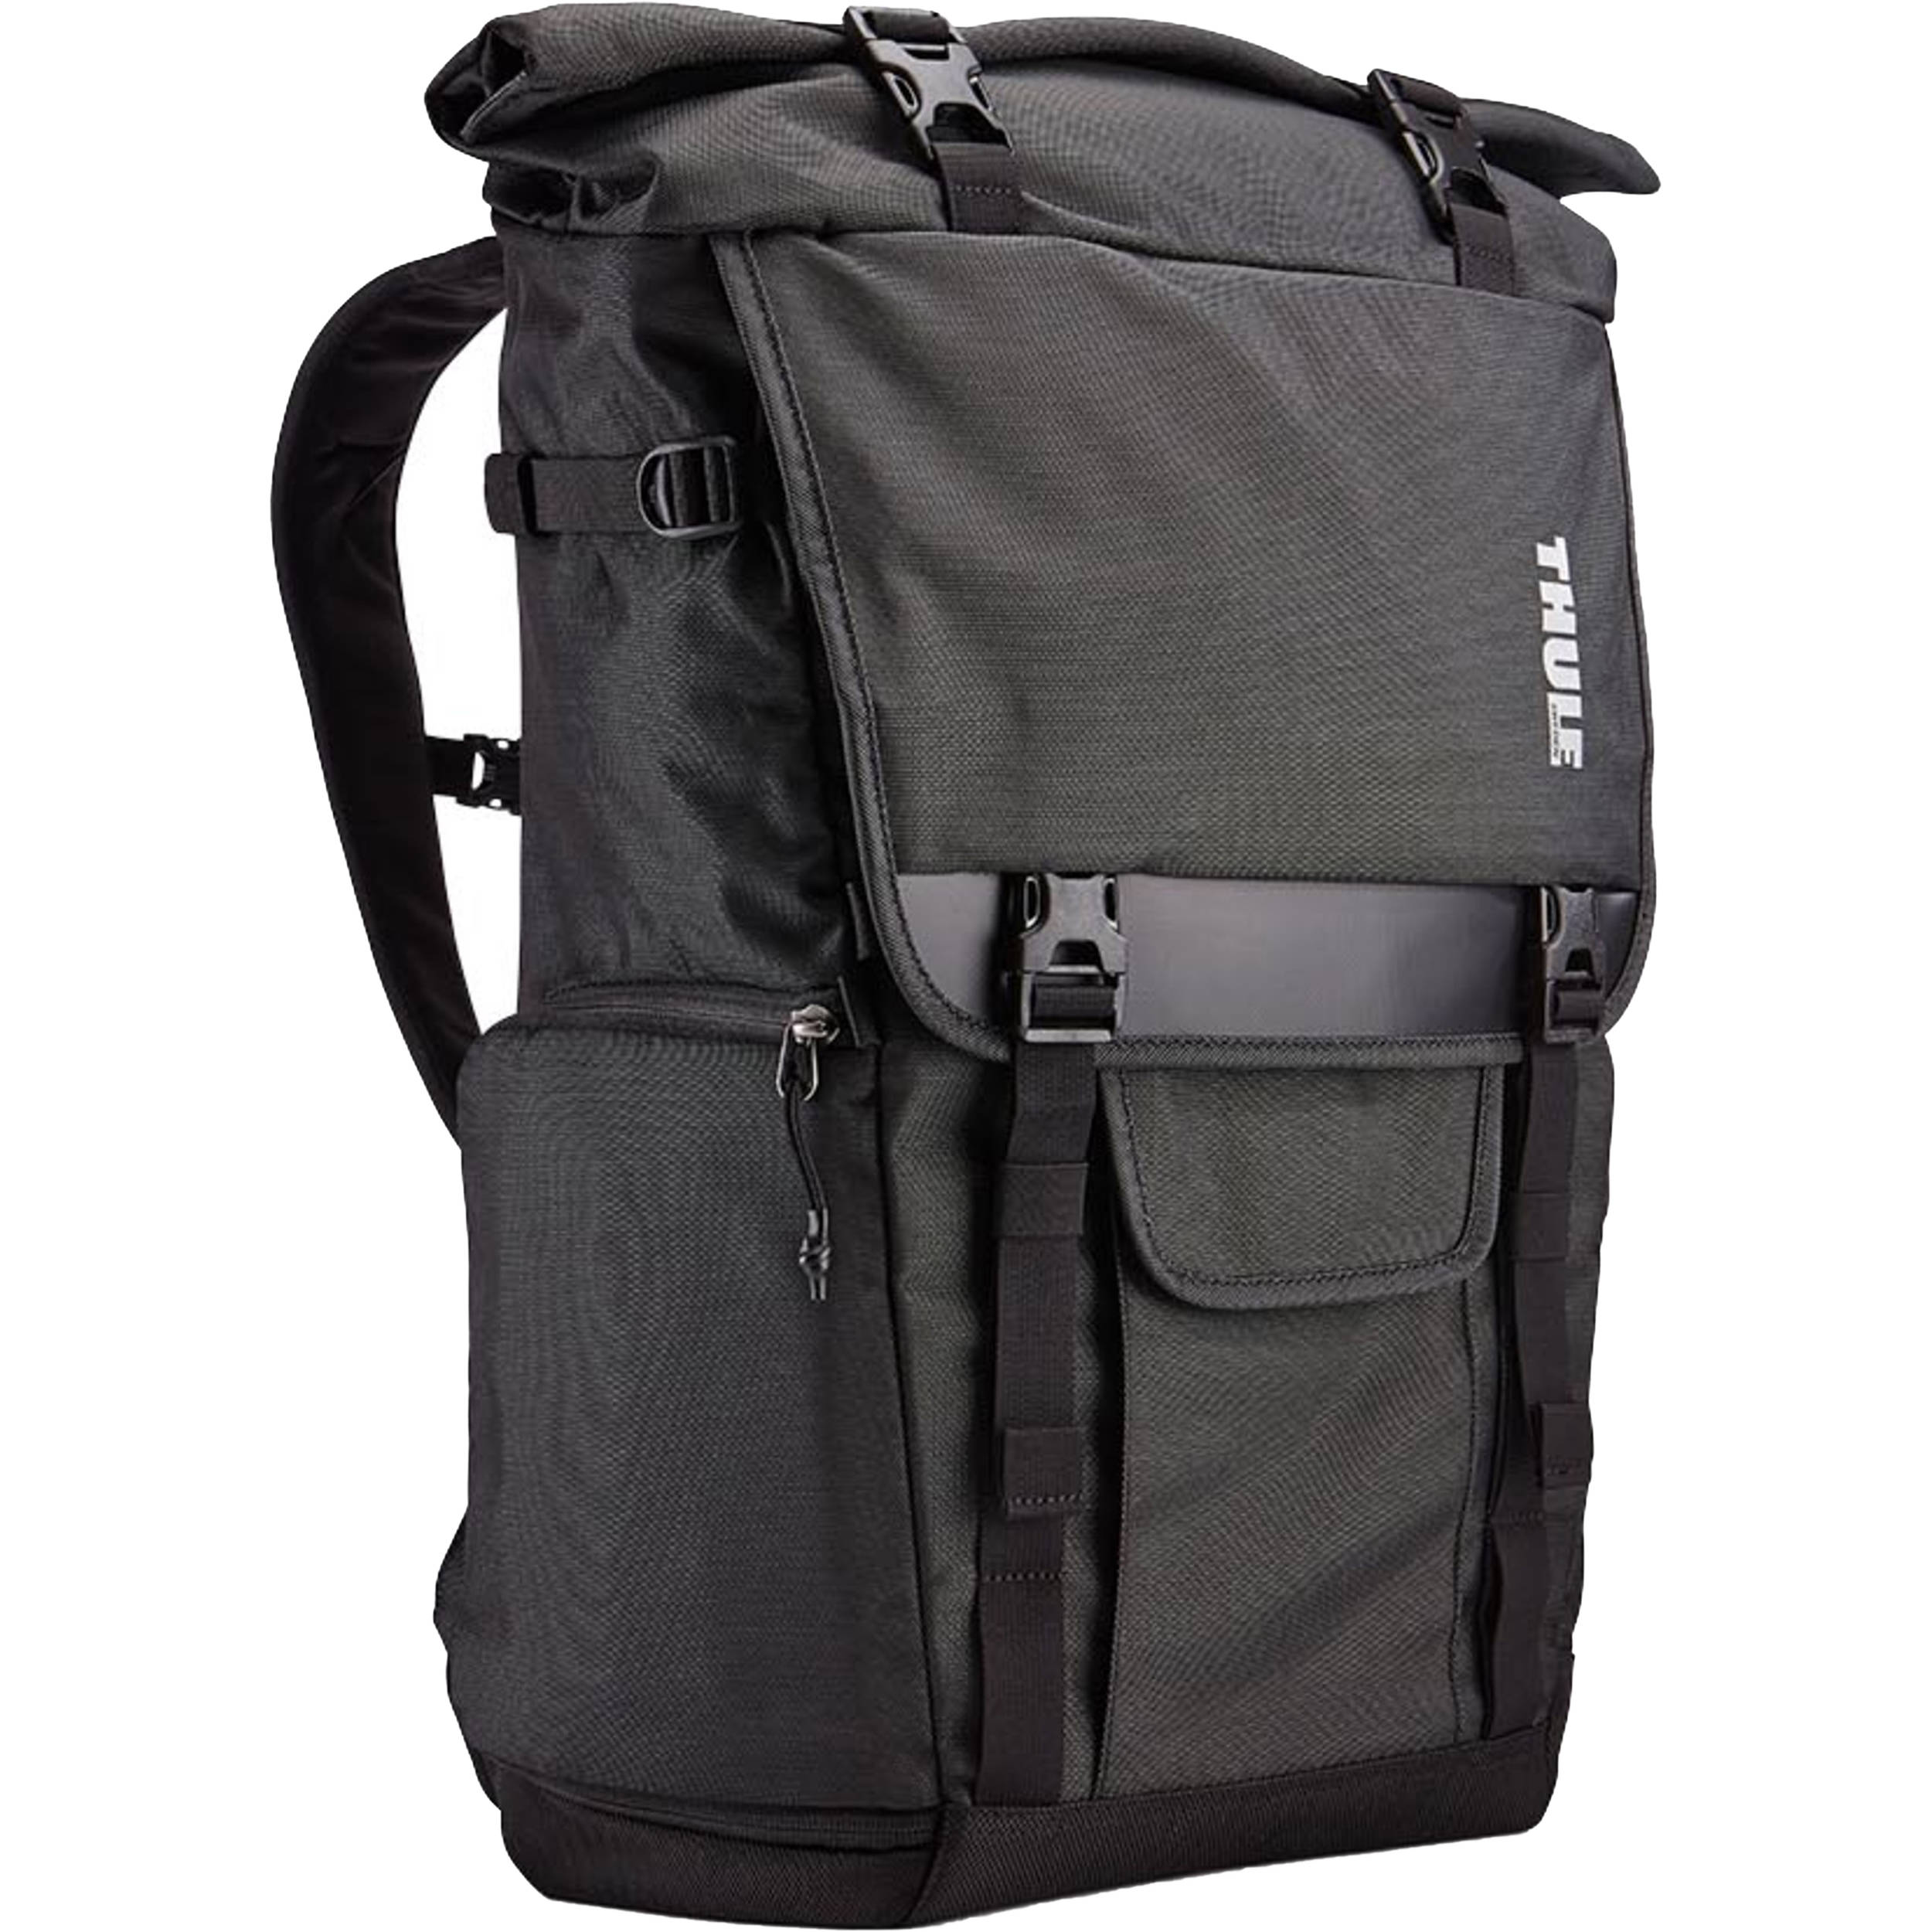 thule covert dslr rolltop backpack 3201963 b h photo video. Black Bedroom Furniture Sets. Home Design Ideas